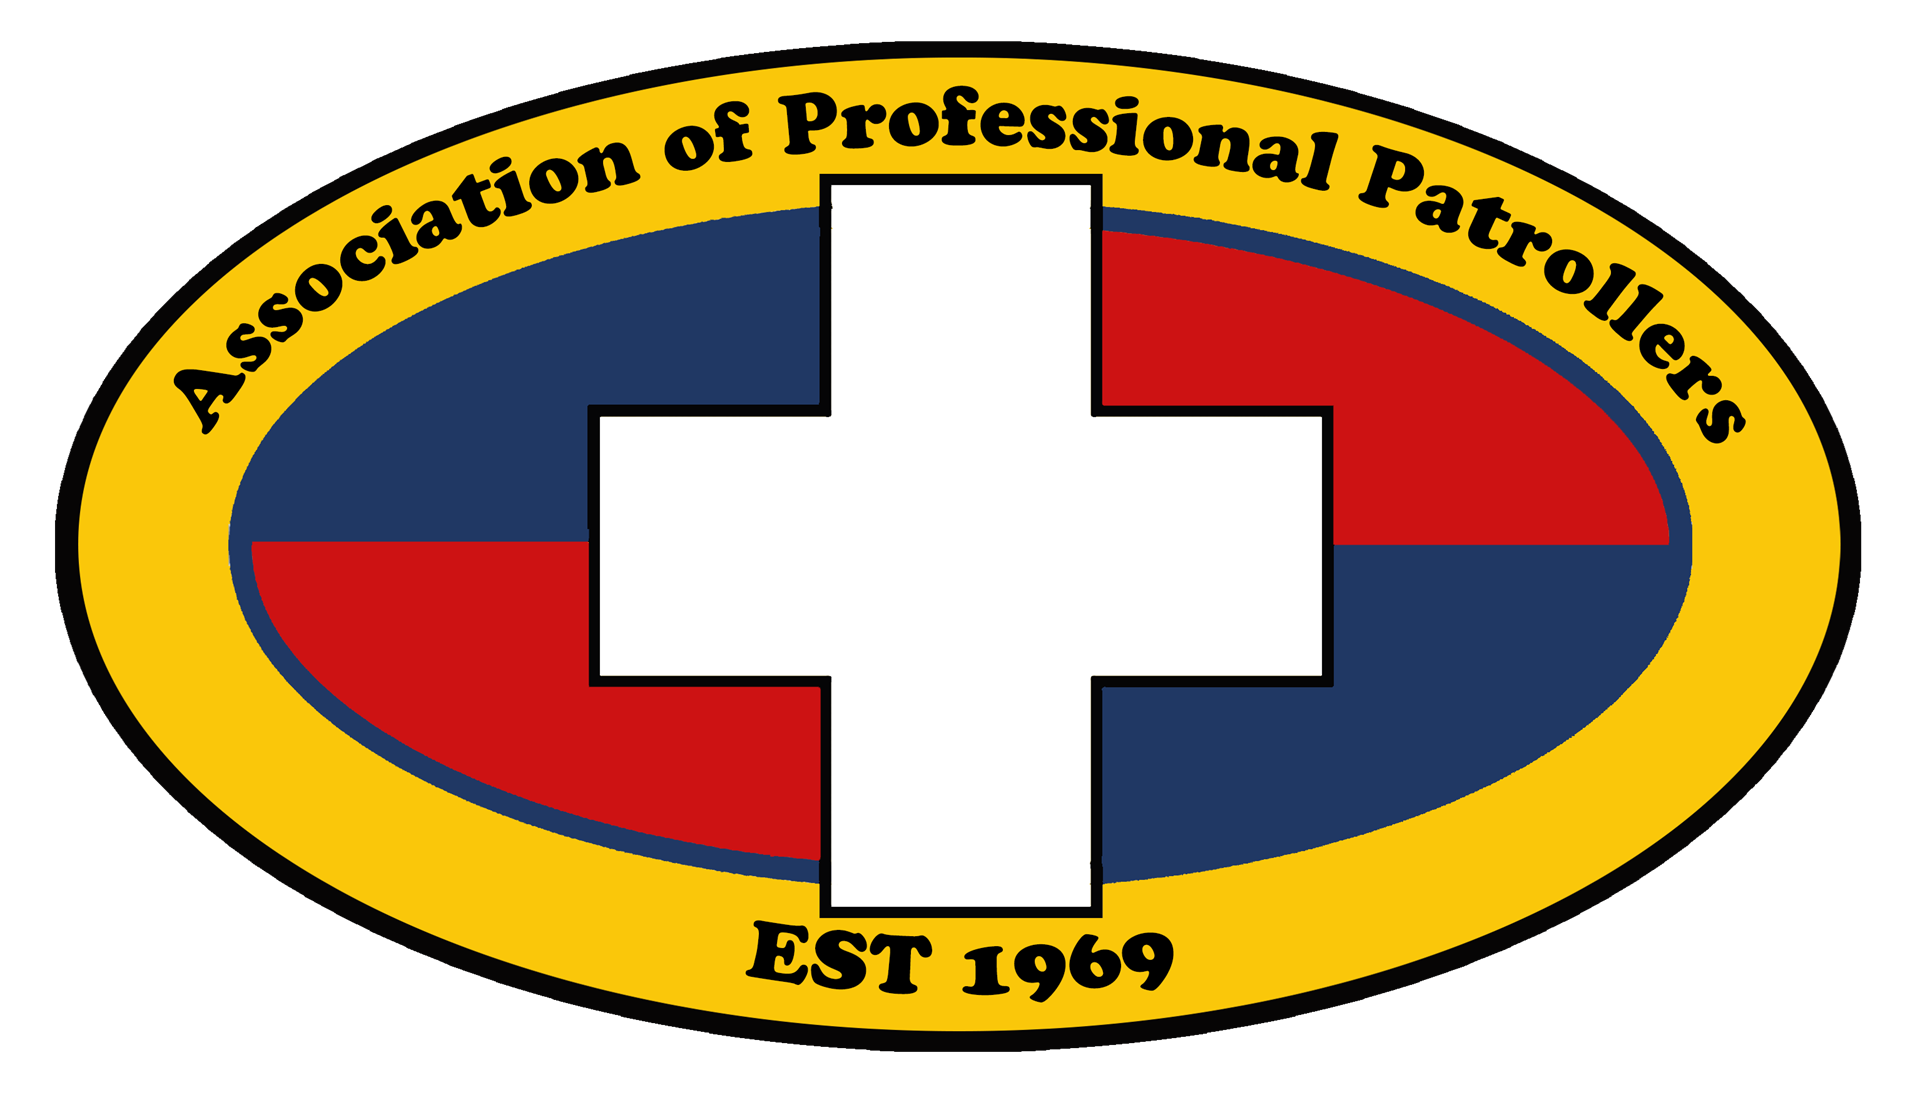 Association of Professional Patrollers - Explosives (used in